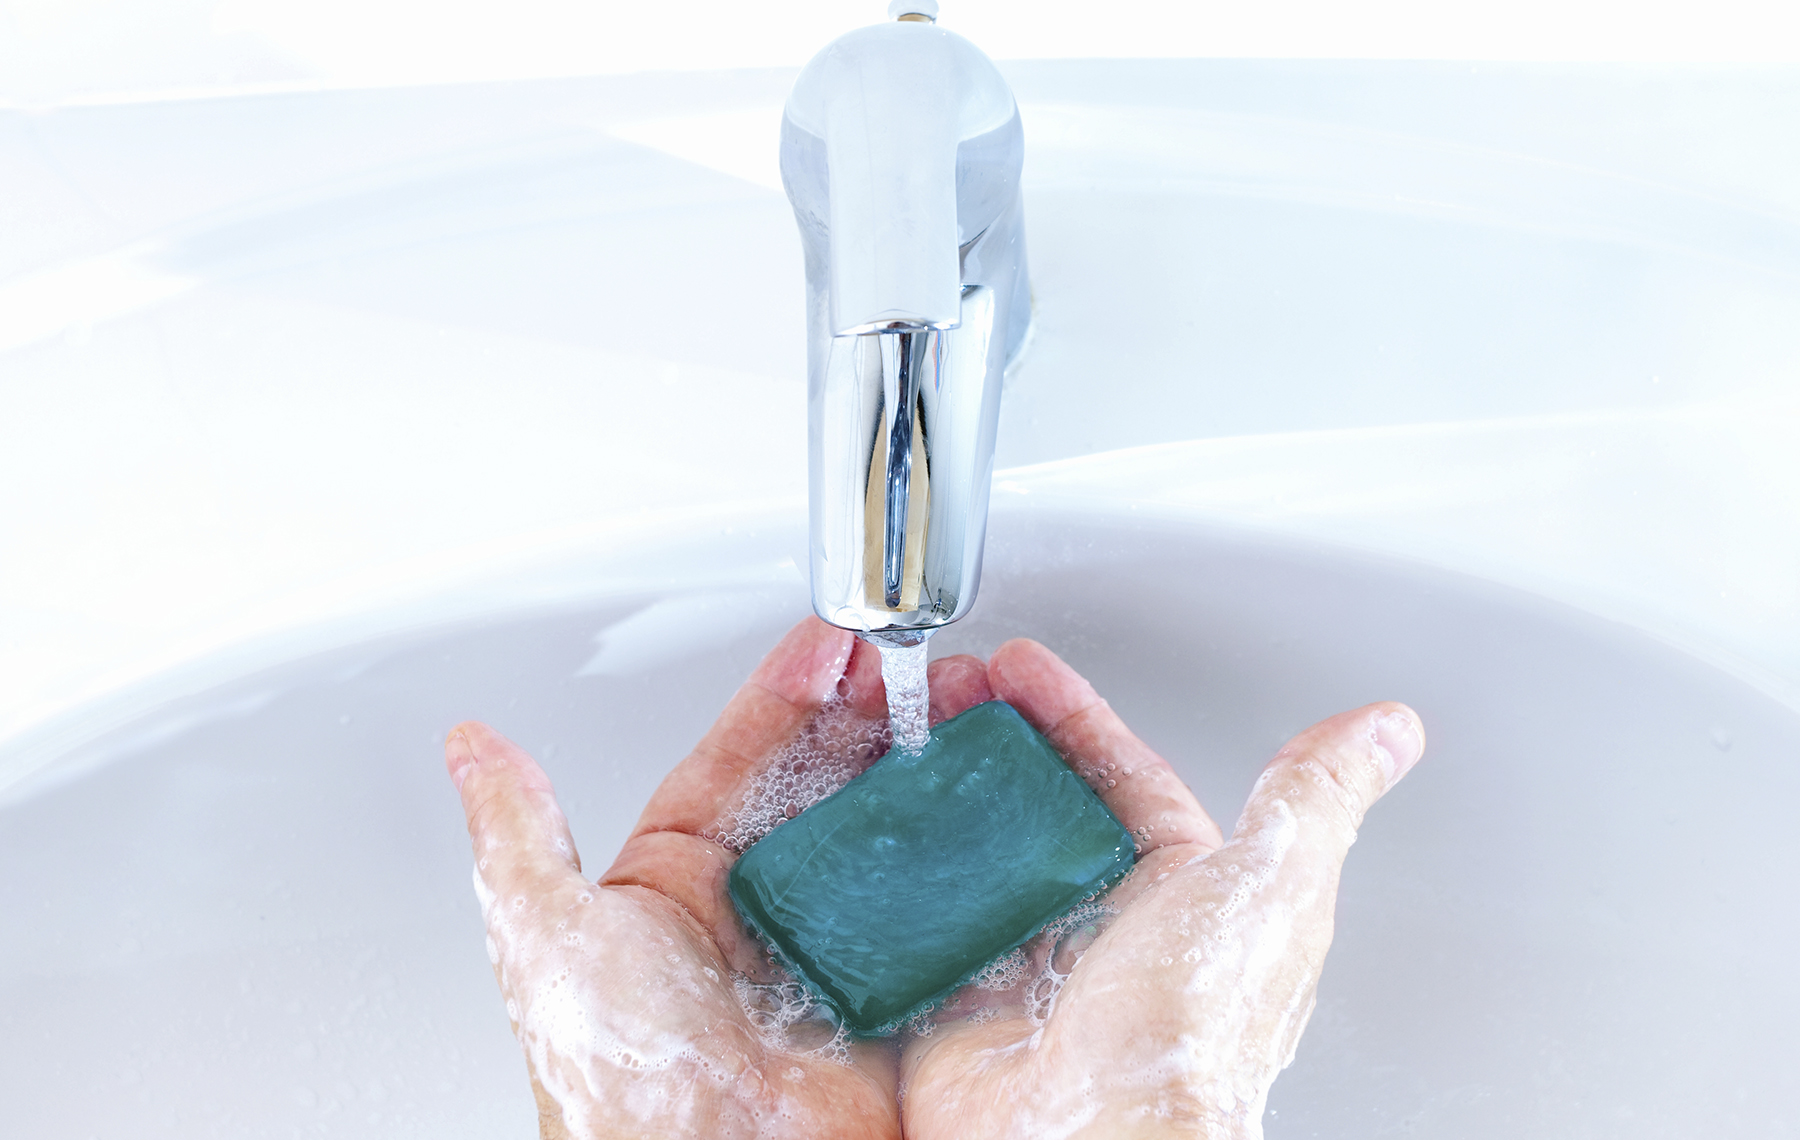 Hands holding a soap